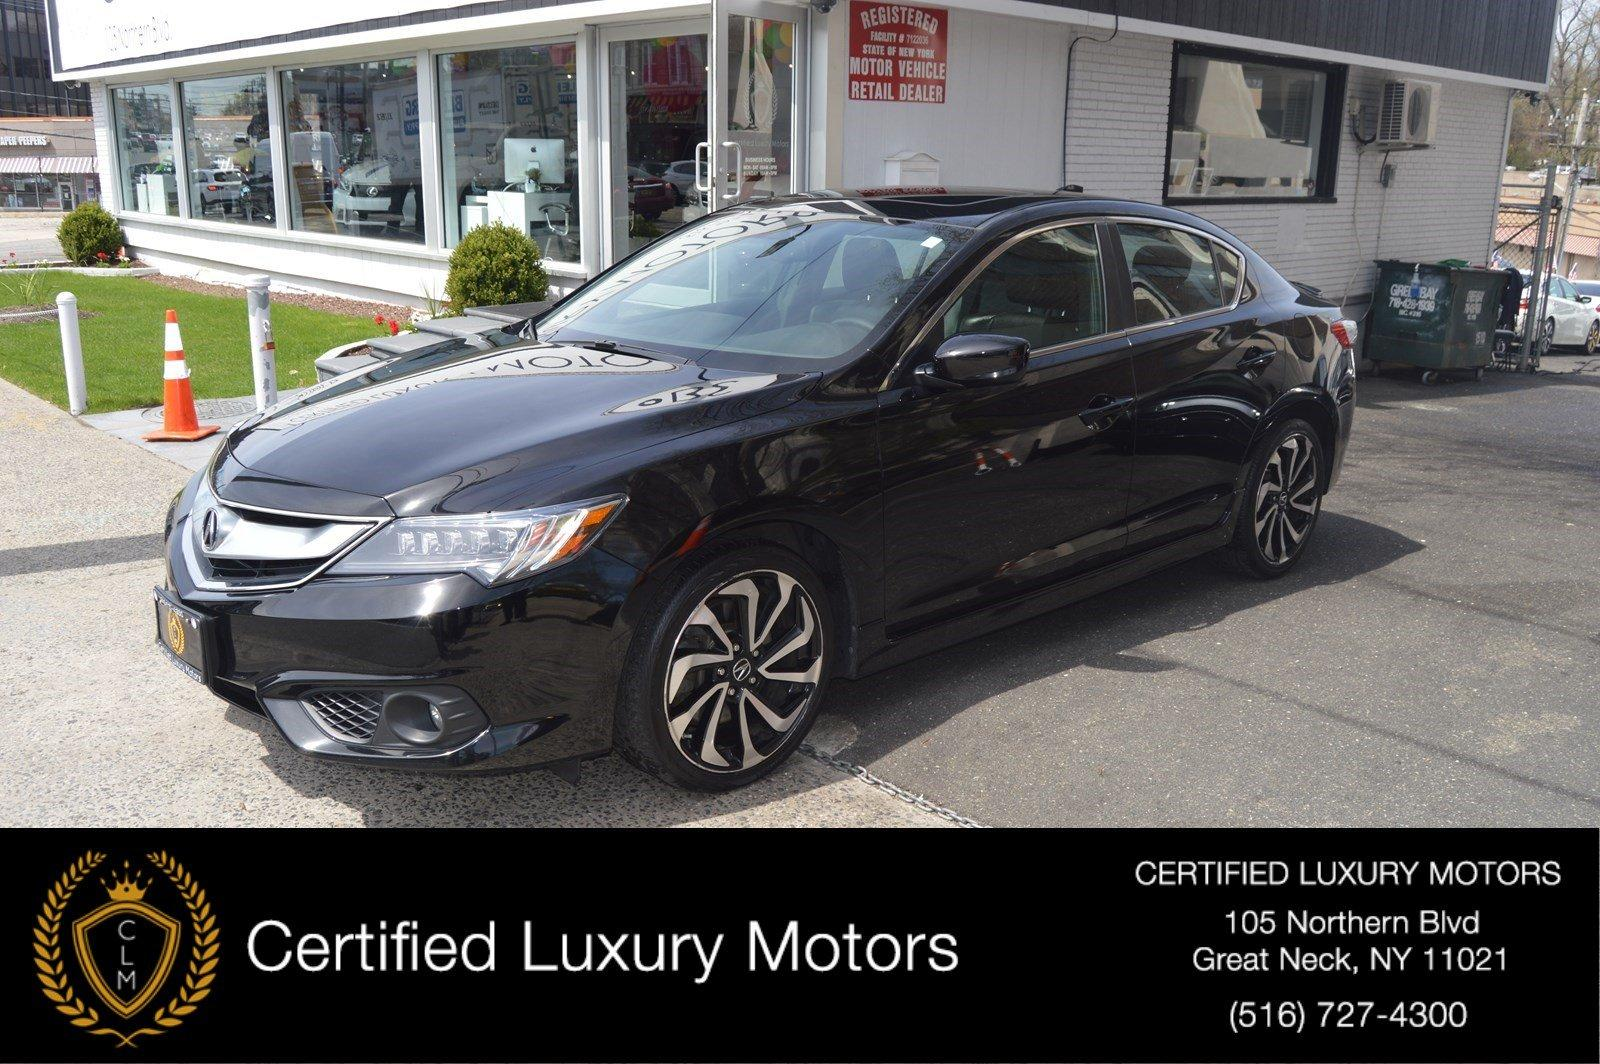 Used 2016 Acura ILX w/Premium/A-SPEC Pkg | Great Neck, NY